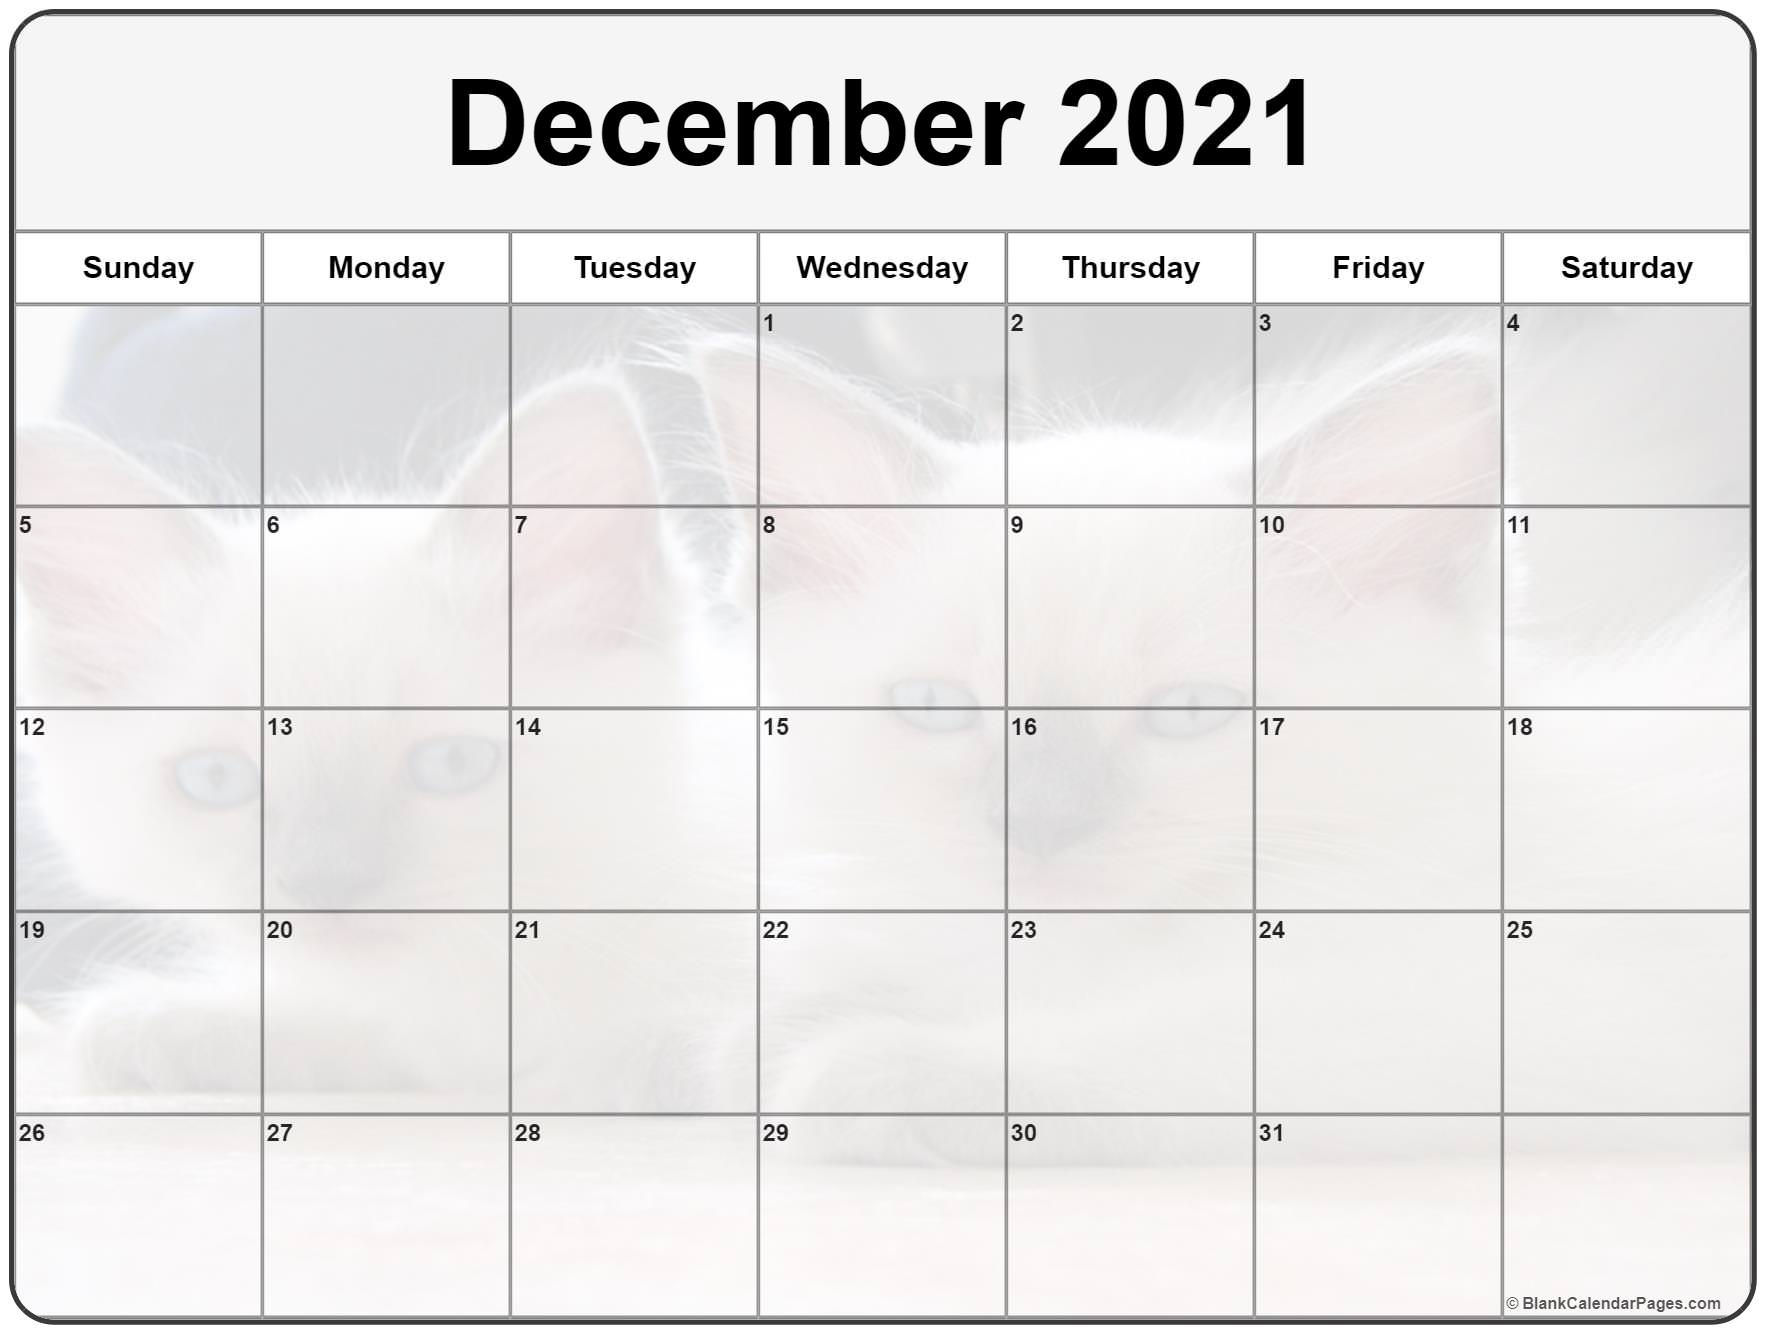 December 2021 with cat photo